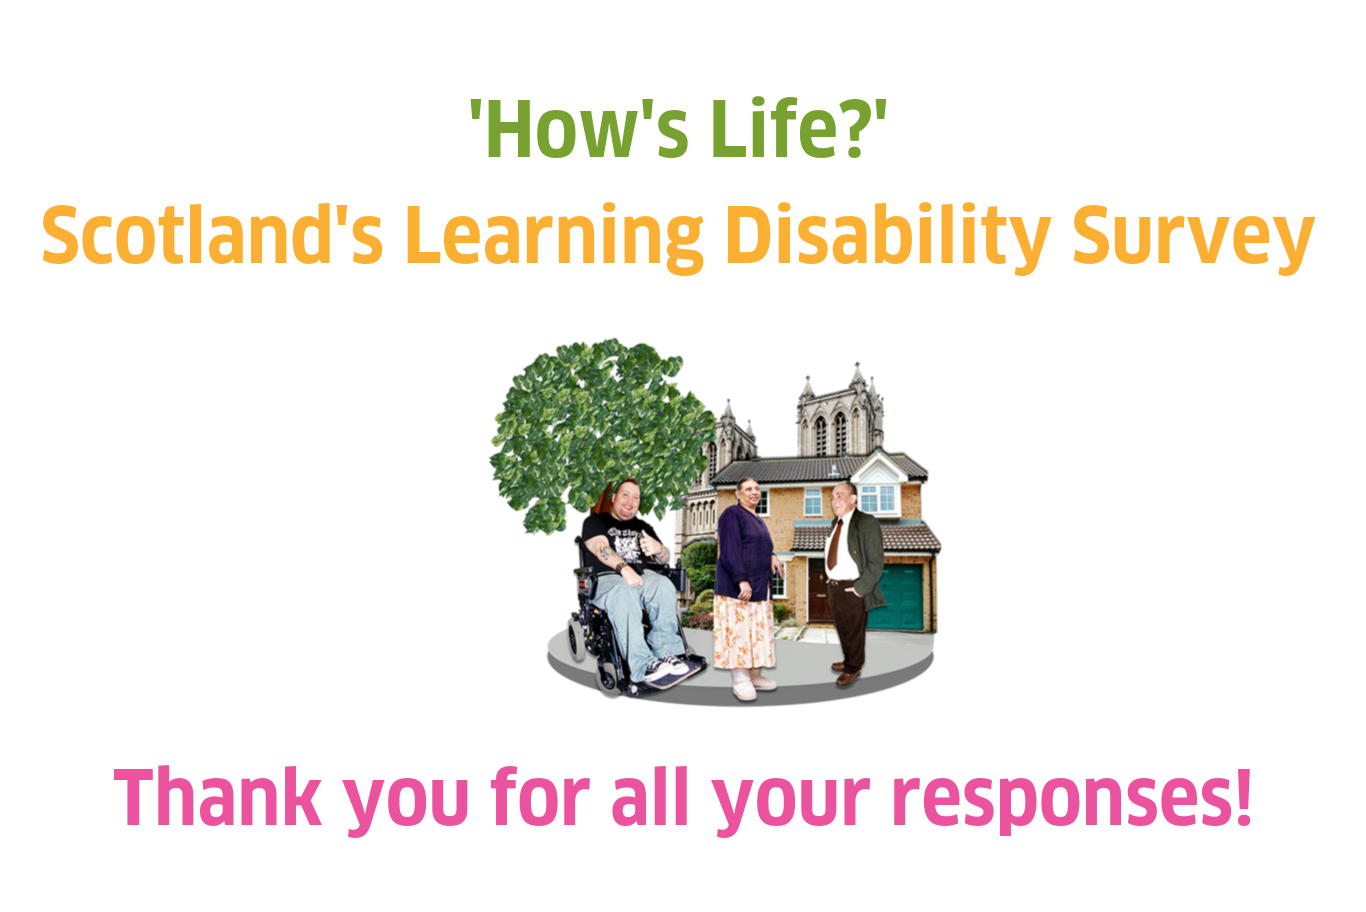 Scotland's Learning Disability Survey. Picture of a town and three different people representing a community.